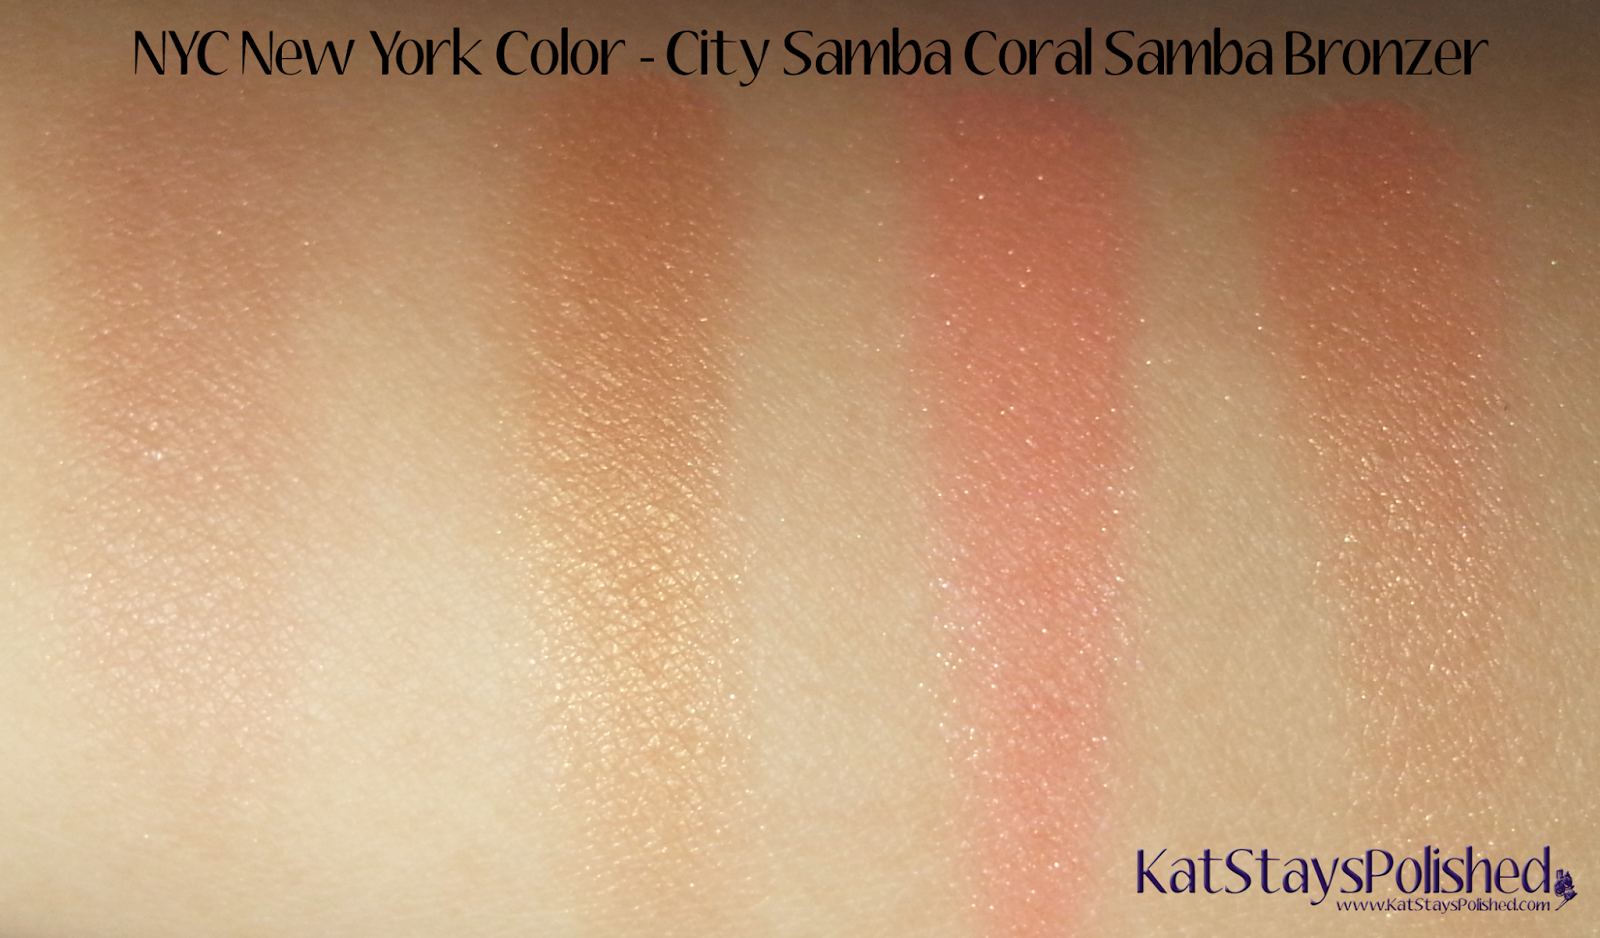 NYC New York Color - City Samba Sun 'n' Bronze - Coral Samba Bronzer Swatches | Kat Stays Polished